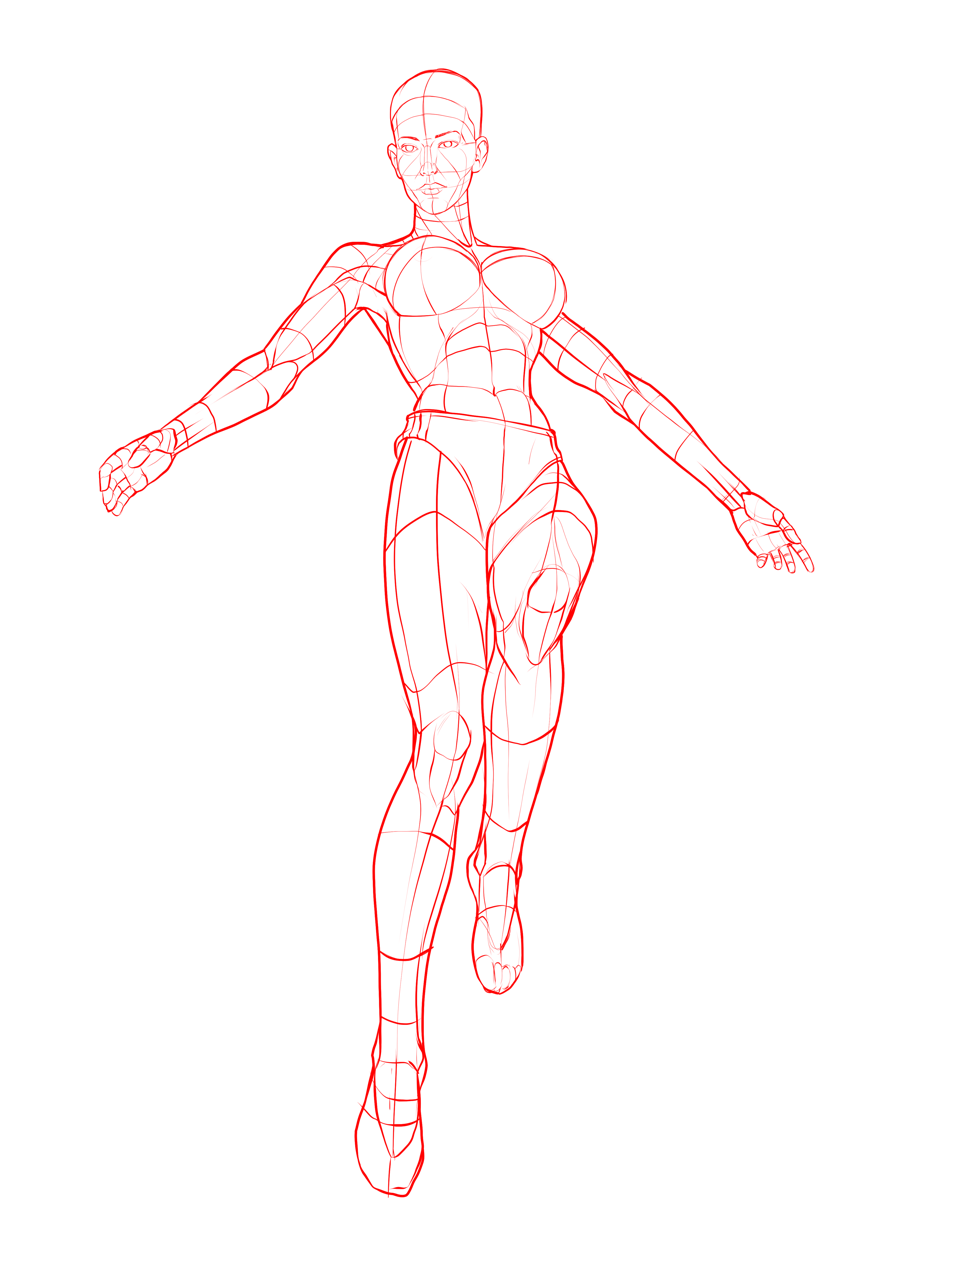 Mage Pose Reference Google Search Pose Reference Poses Drawing Reference Poses